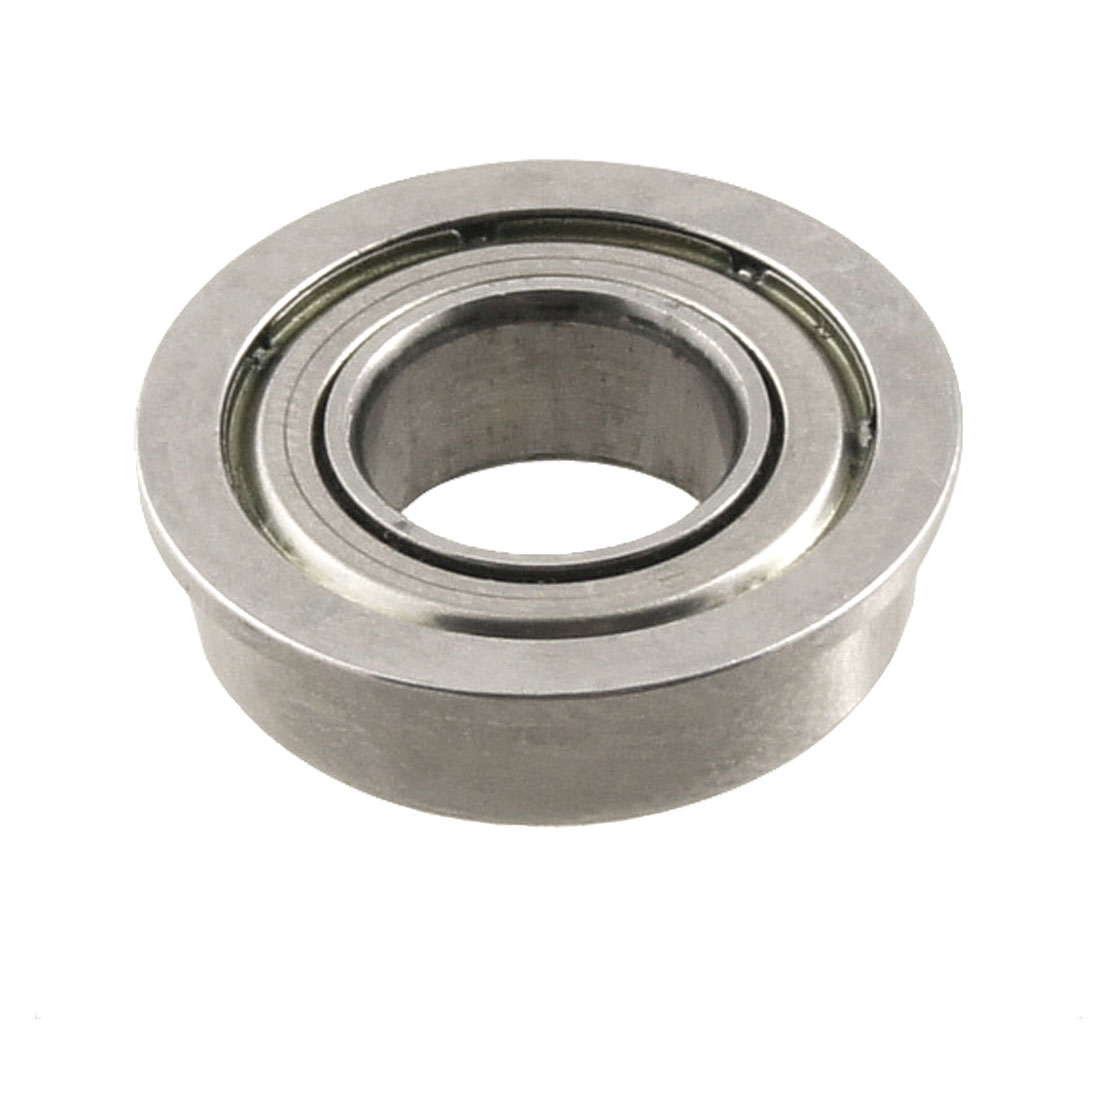 Silver Tone 16mm x 8mm x 5mm Shield Premium Ball Bearing